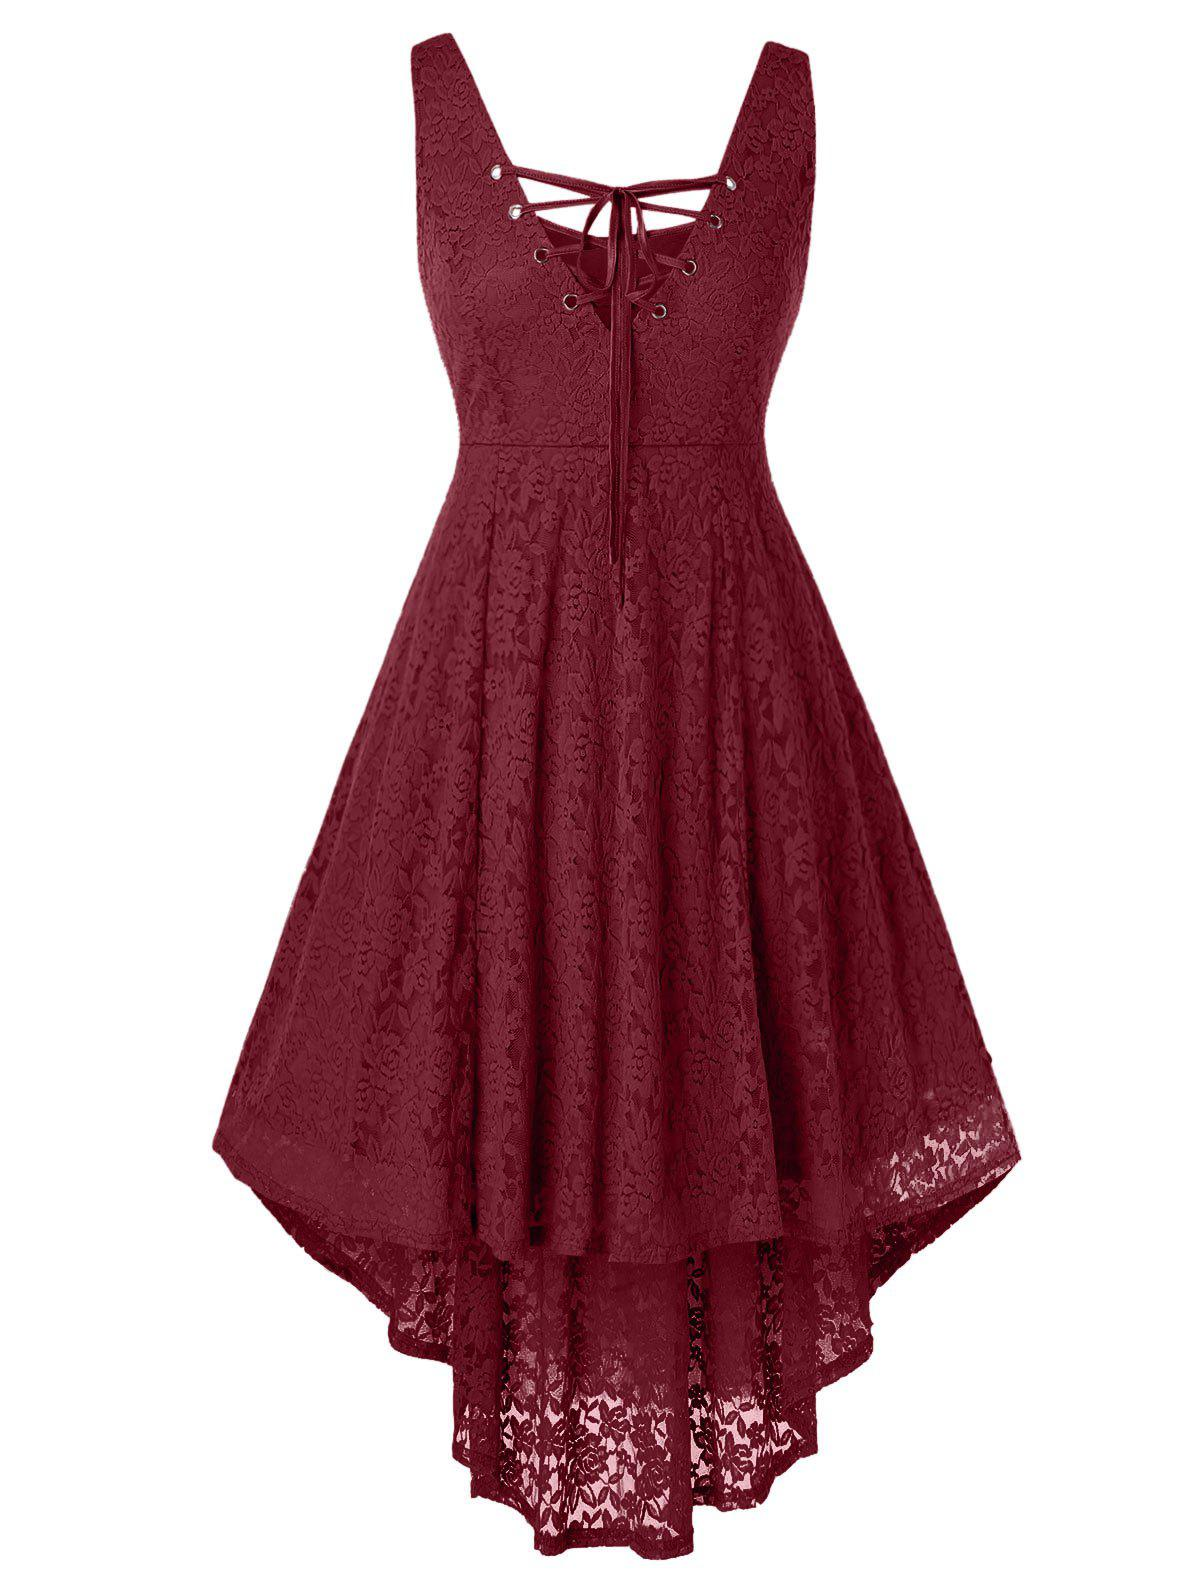 Plus Size High Low Lace Sleeveless Dress - RED WINE 2X